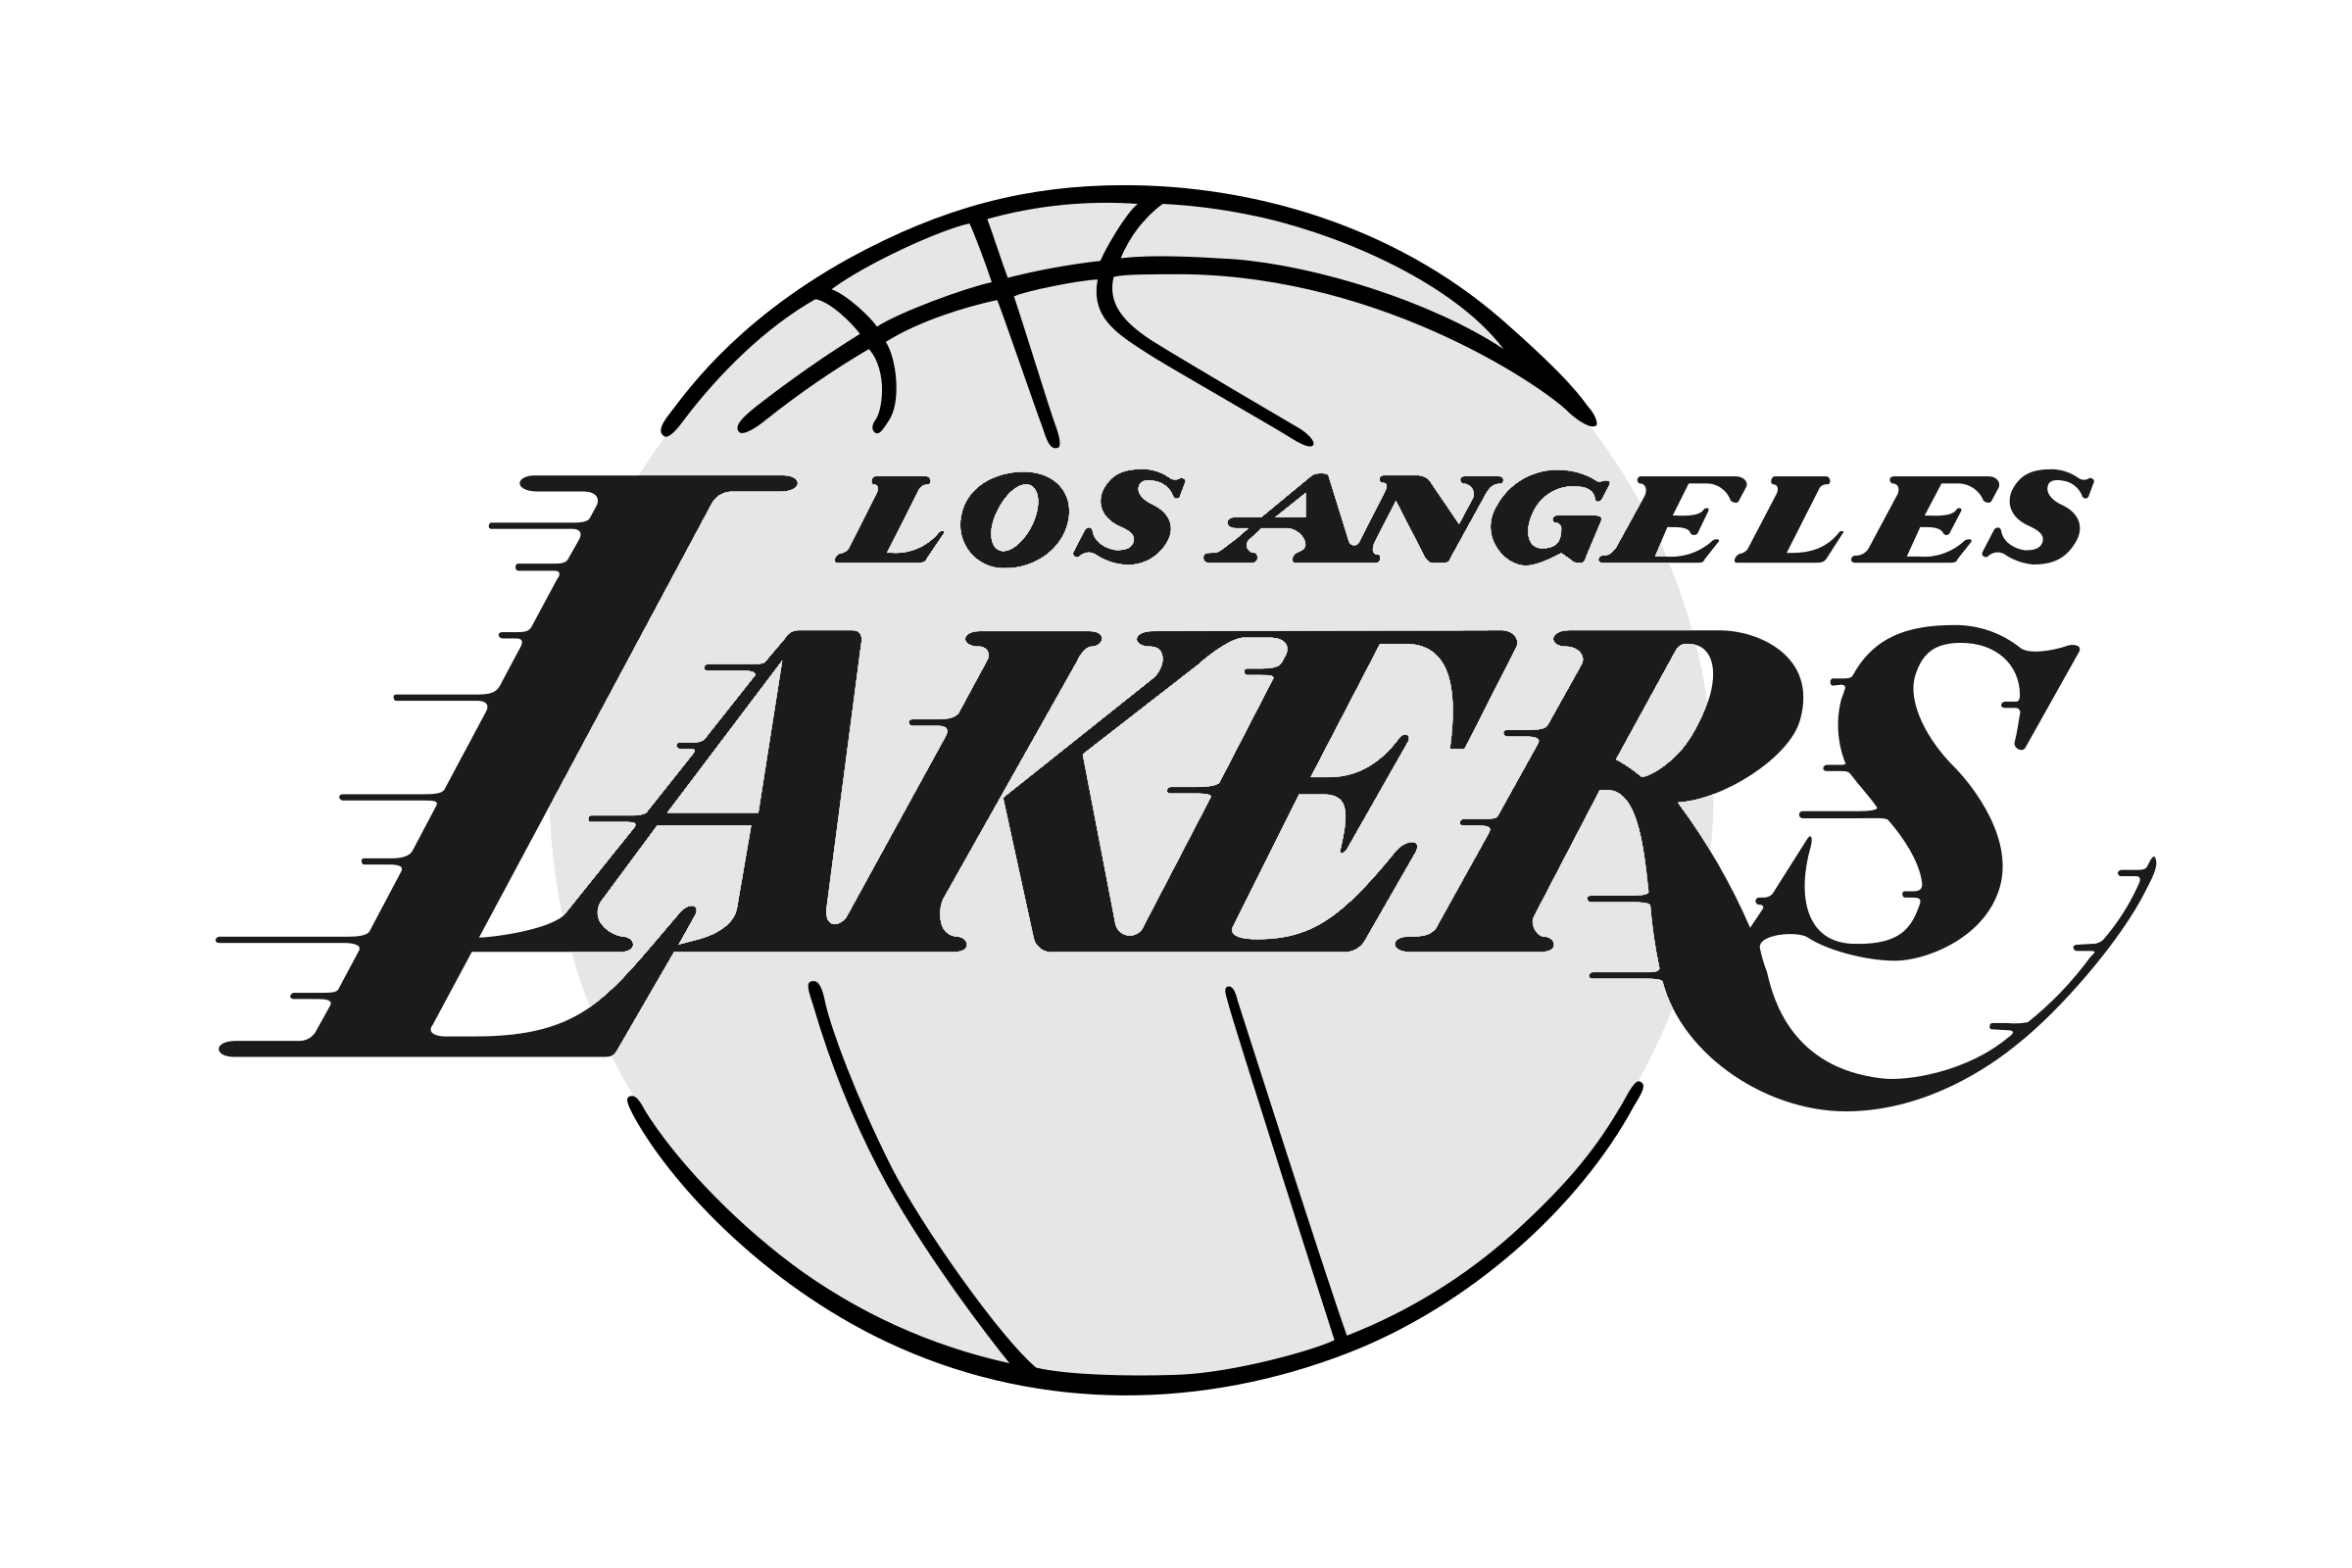 los-angeles-lakers-logo-black-and-white.png